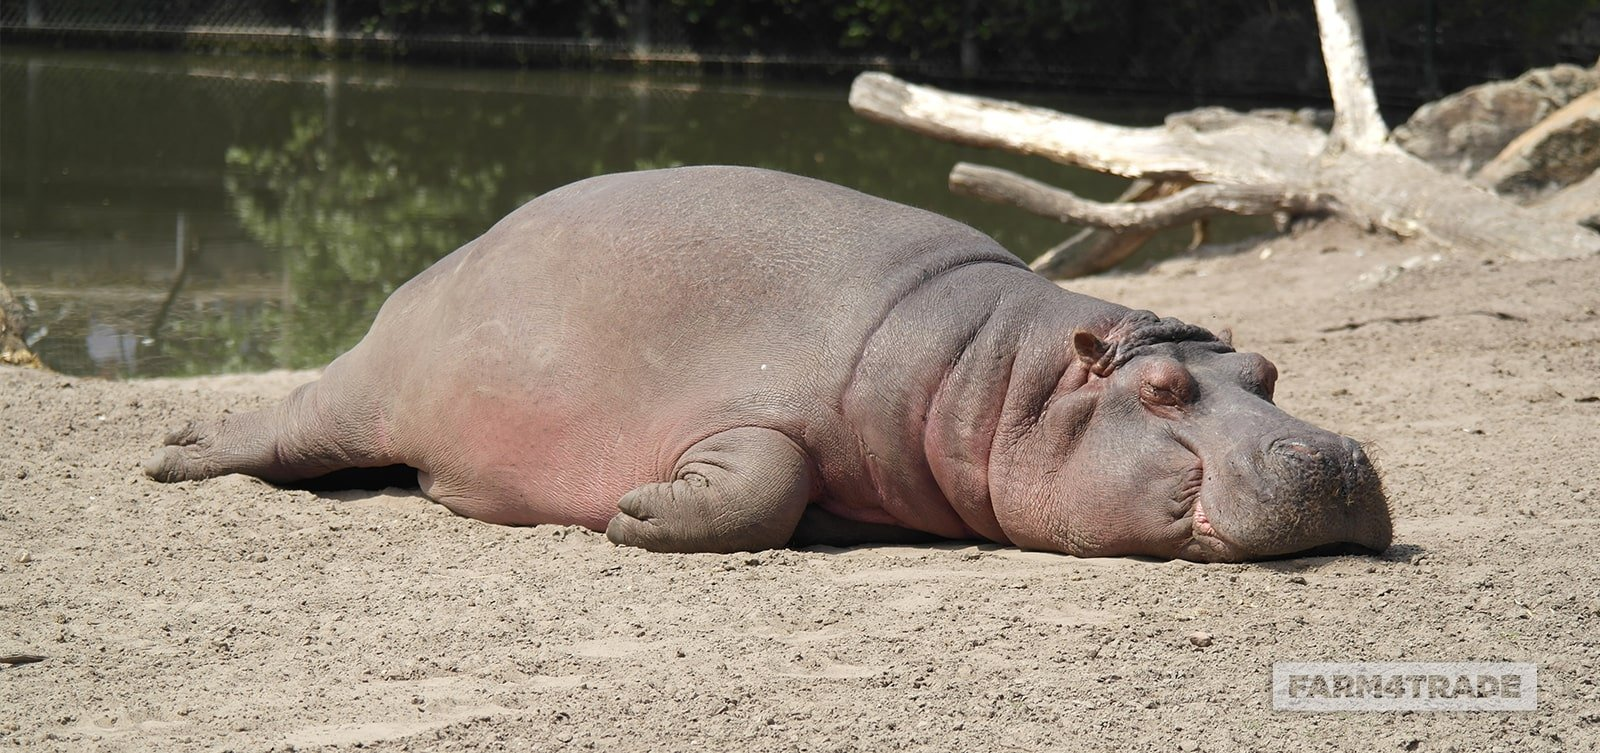 Farm4Trade-The effects of drought on the hippopotamus